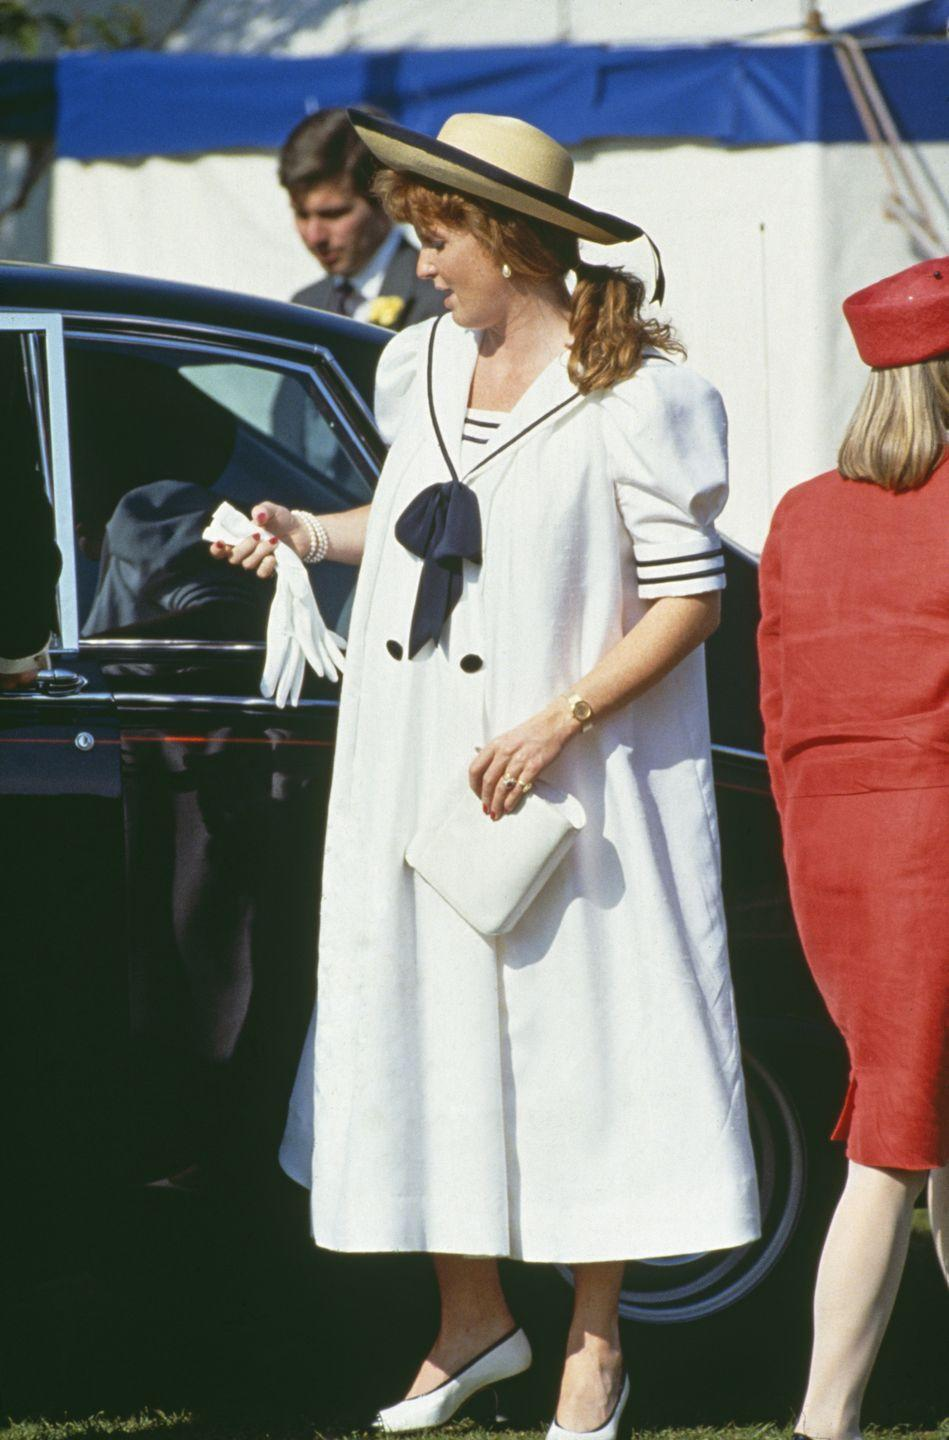 """<p>During her first pregnancy, the Duchess of York must have taken style cues from sister-in-law Princess Diana (who loved <a href=""""https://www.townandcountrymag.com/society/tradition/g35586267/princess-diana-sailor-dress-fashion-photos/"""" rel=""""nofollow noopener"""" target=""""_blank"""" data-ylk=""""slk:nautical-inspired fashion"""" class=""""link rapid-noclick-resp"""">nautical-inspired fashion</a>). </p>"""